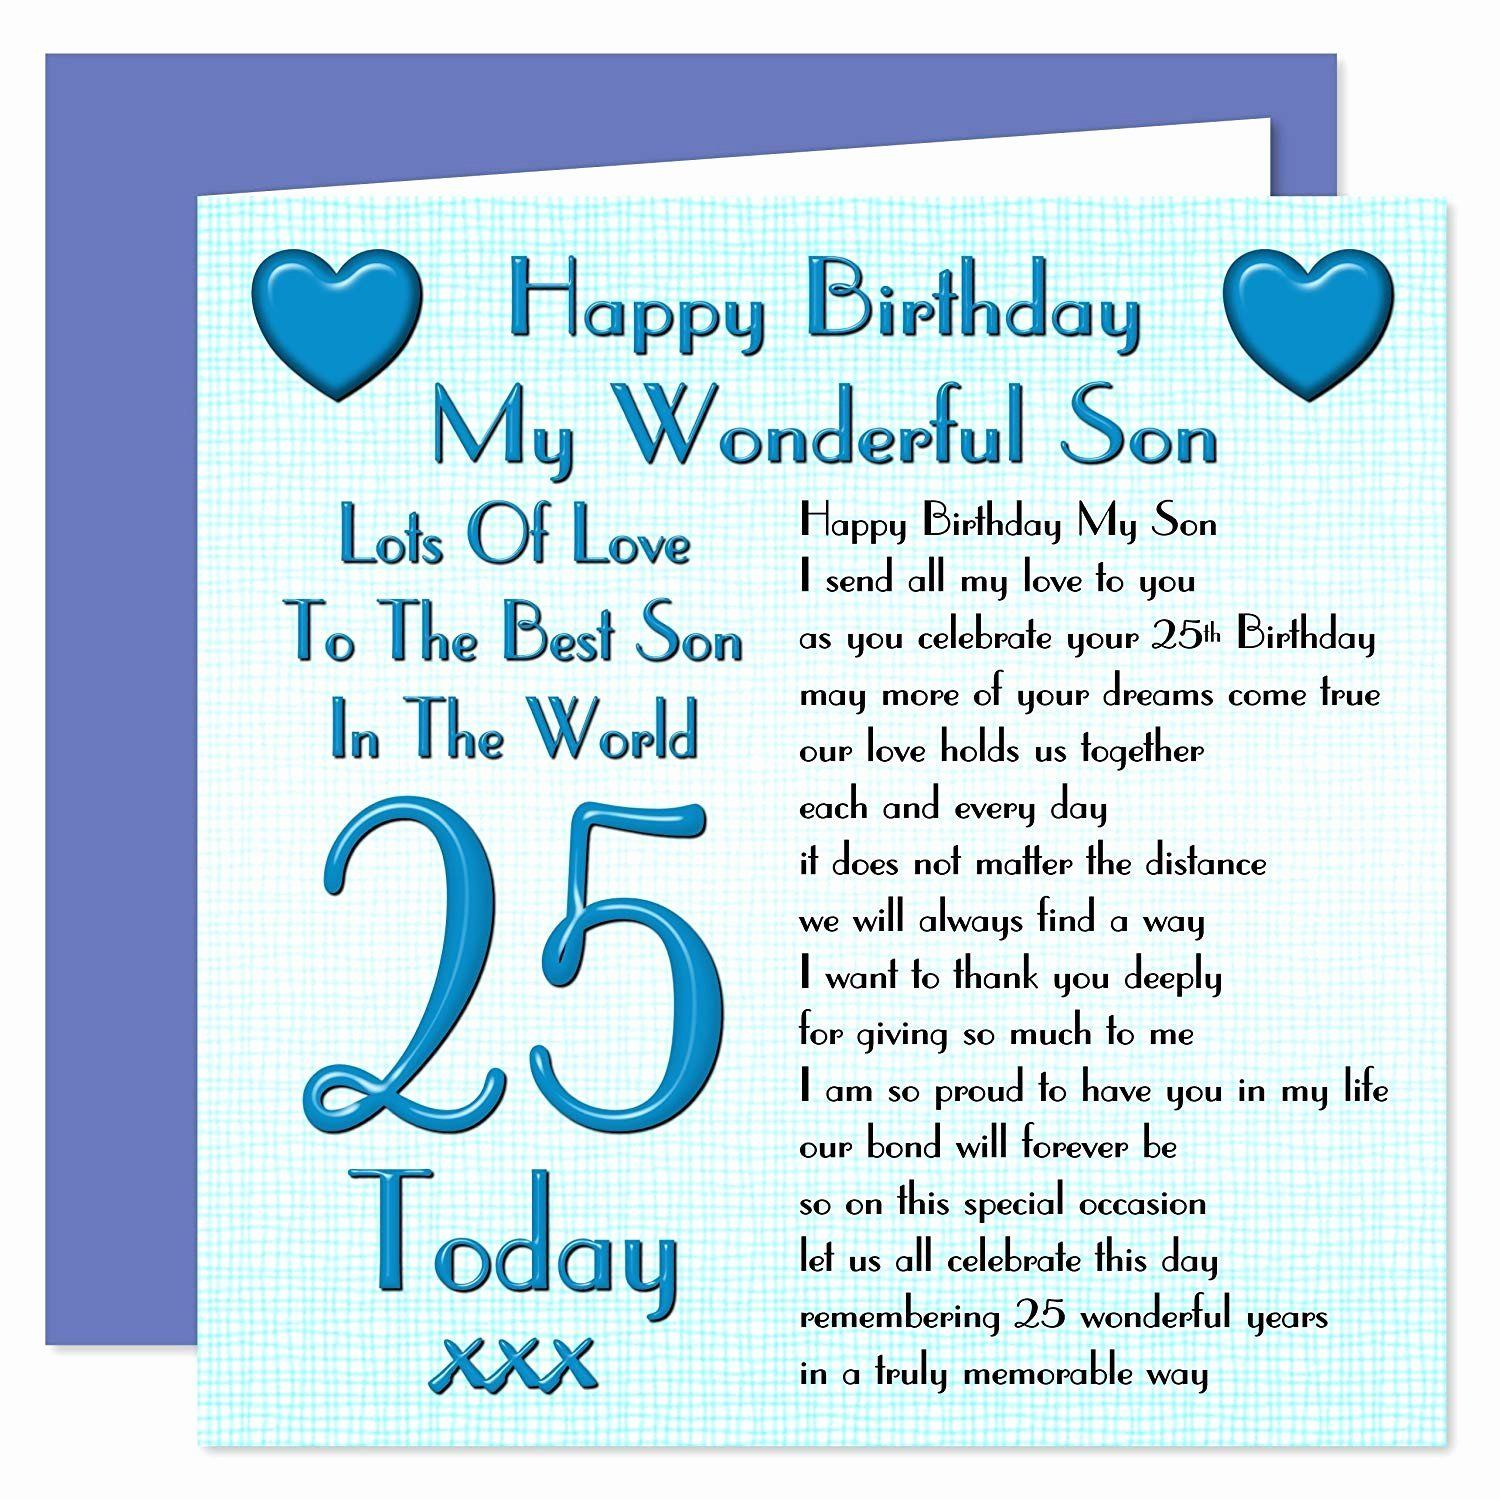 Birthday Ecards For Son Luxury Funny Birthday Cards For Son Son 25th Happy Birthday Card In 2021 Happy 20th Birthday Birthday Wishes For Son Birthday Cards For Brother